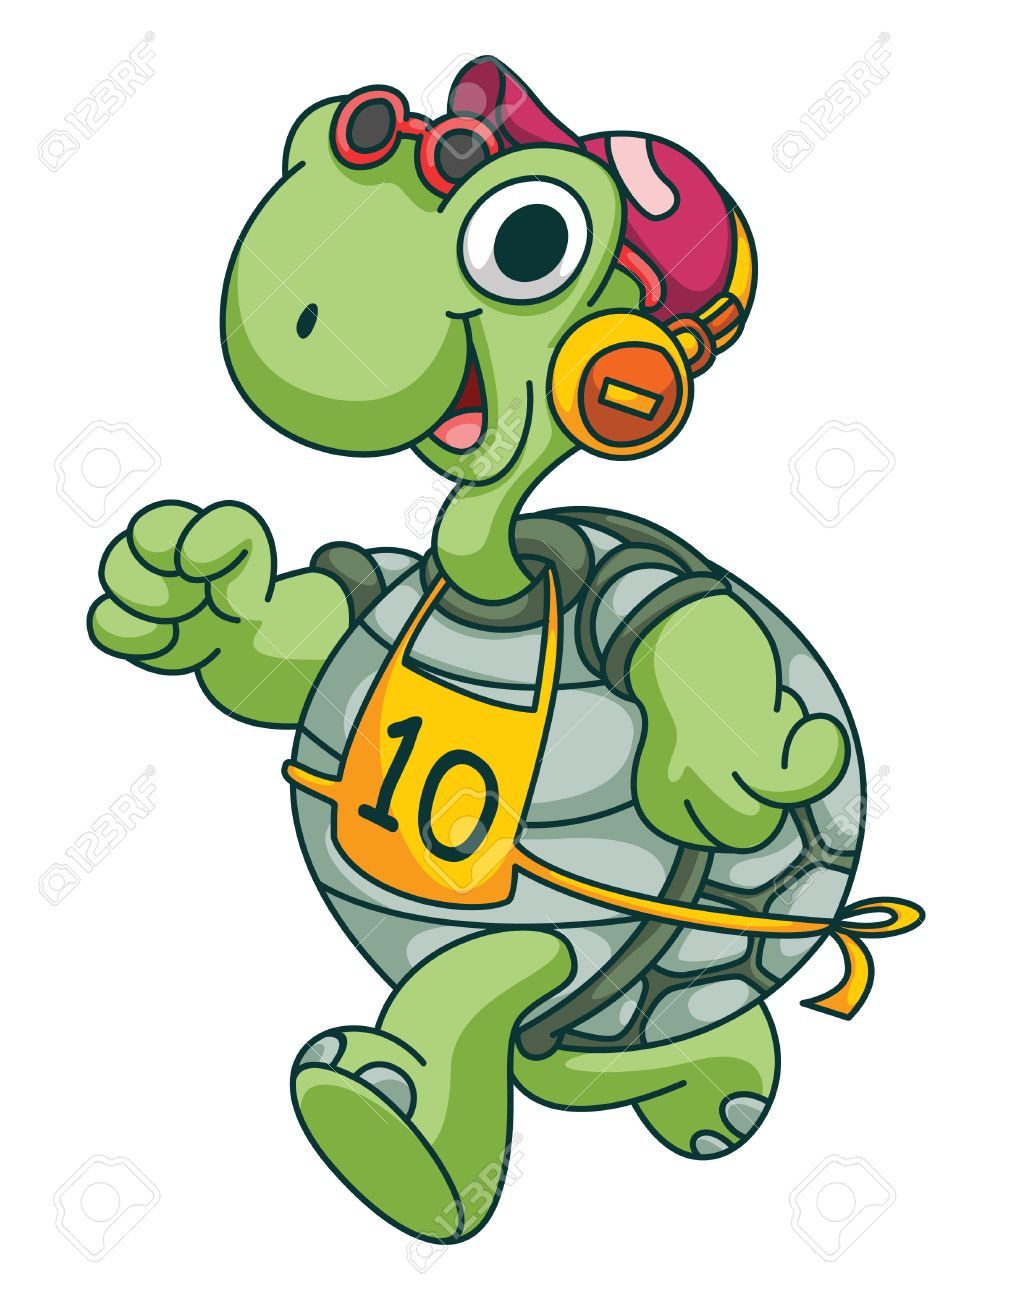 Image result for running turtle